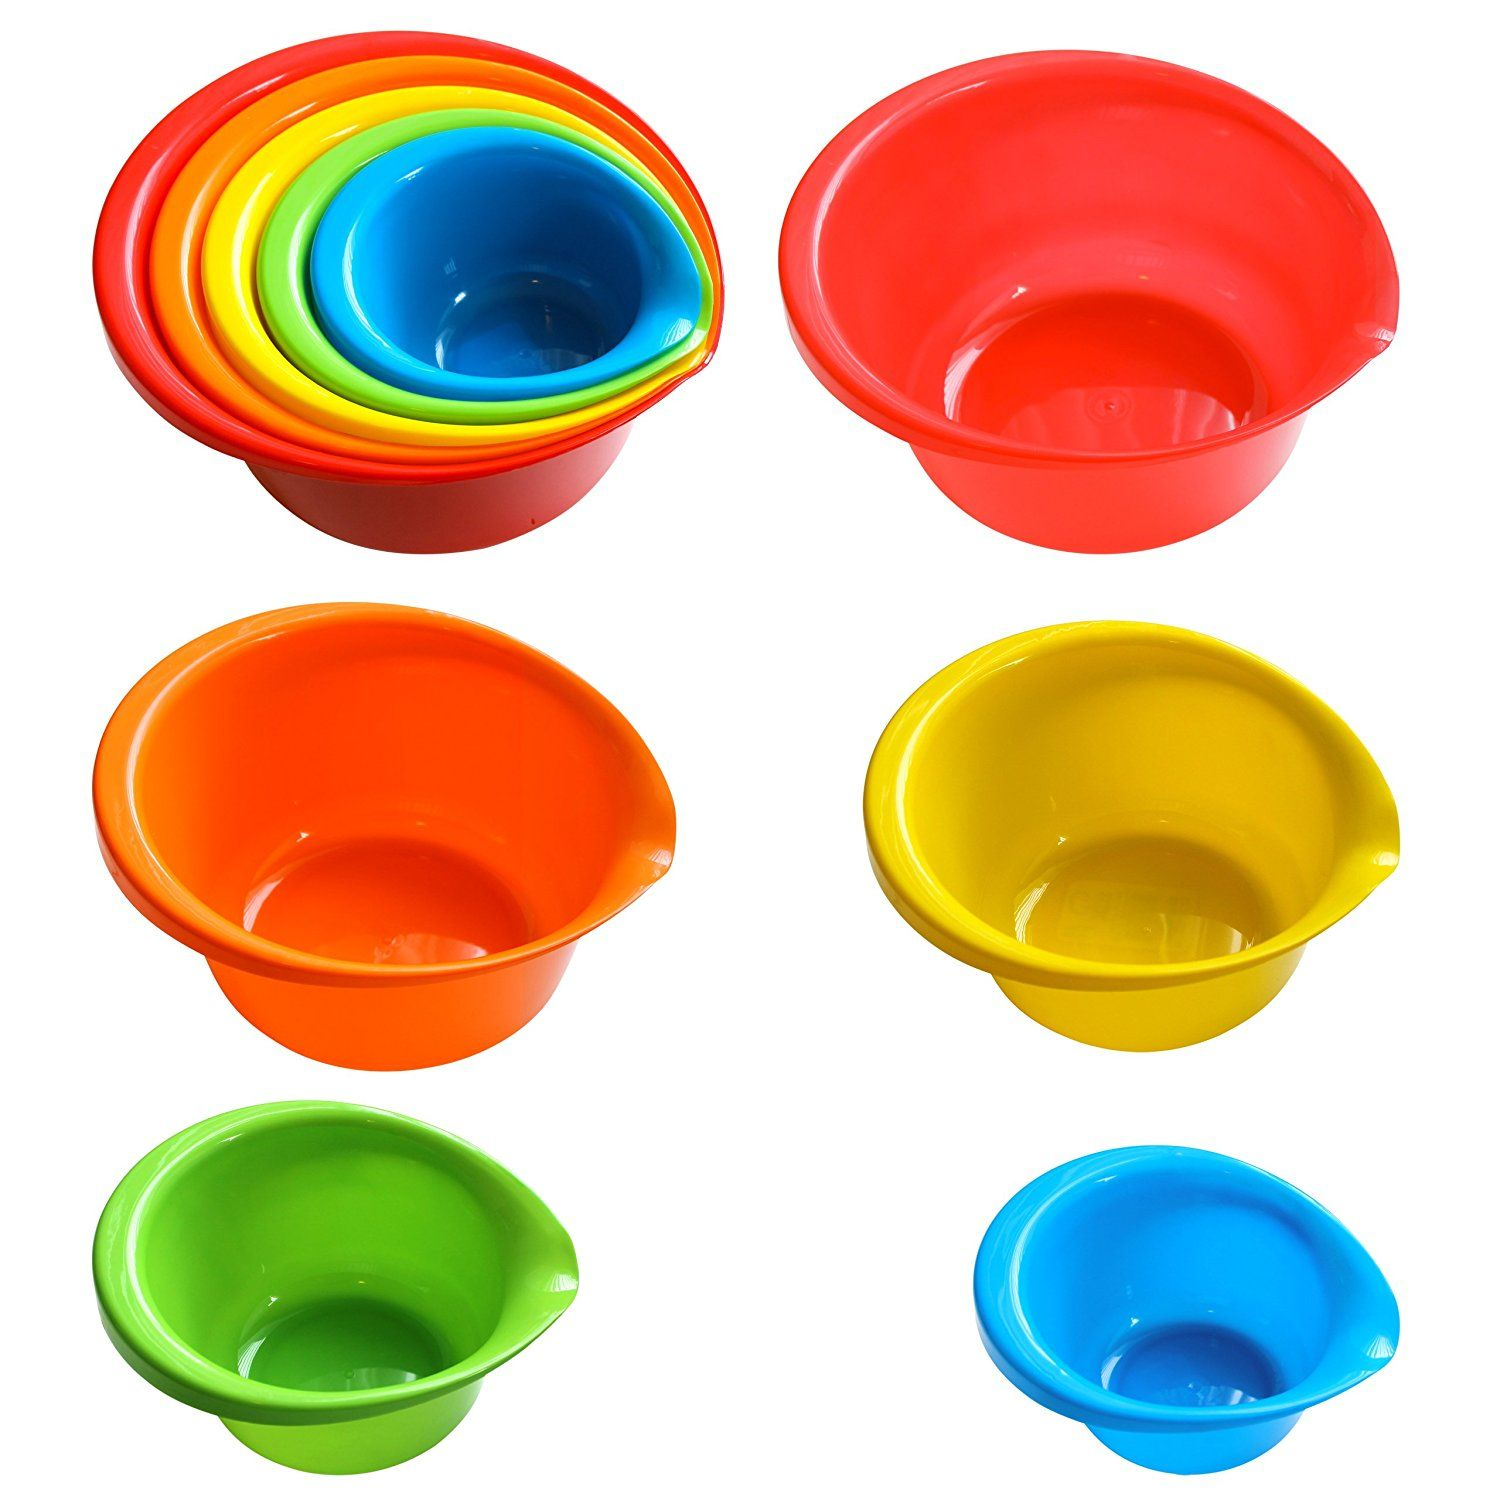 5 Piece Plastic Mixing Bowls With Built In Pouring Spouts In Assorted Colors And Assorted Sizes Special Dis Bowl Mixing Bowls